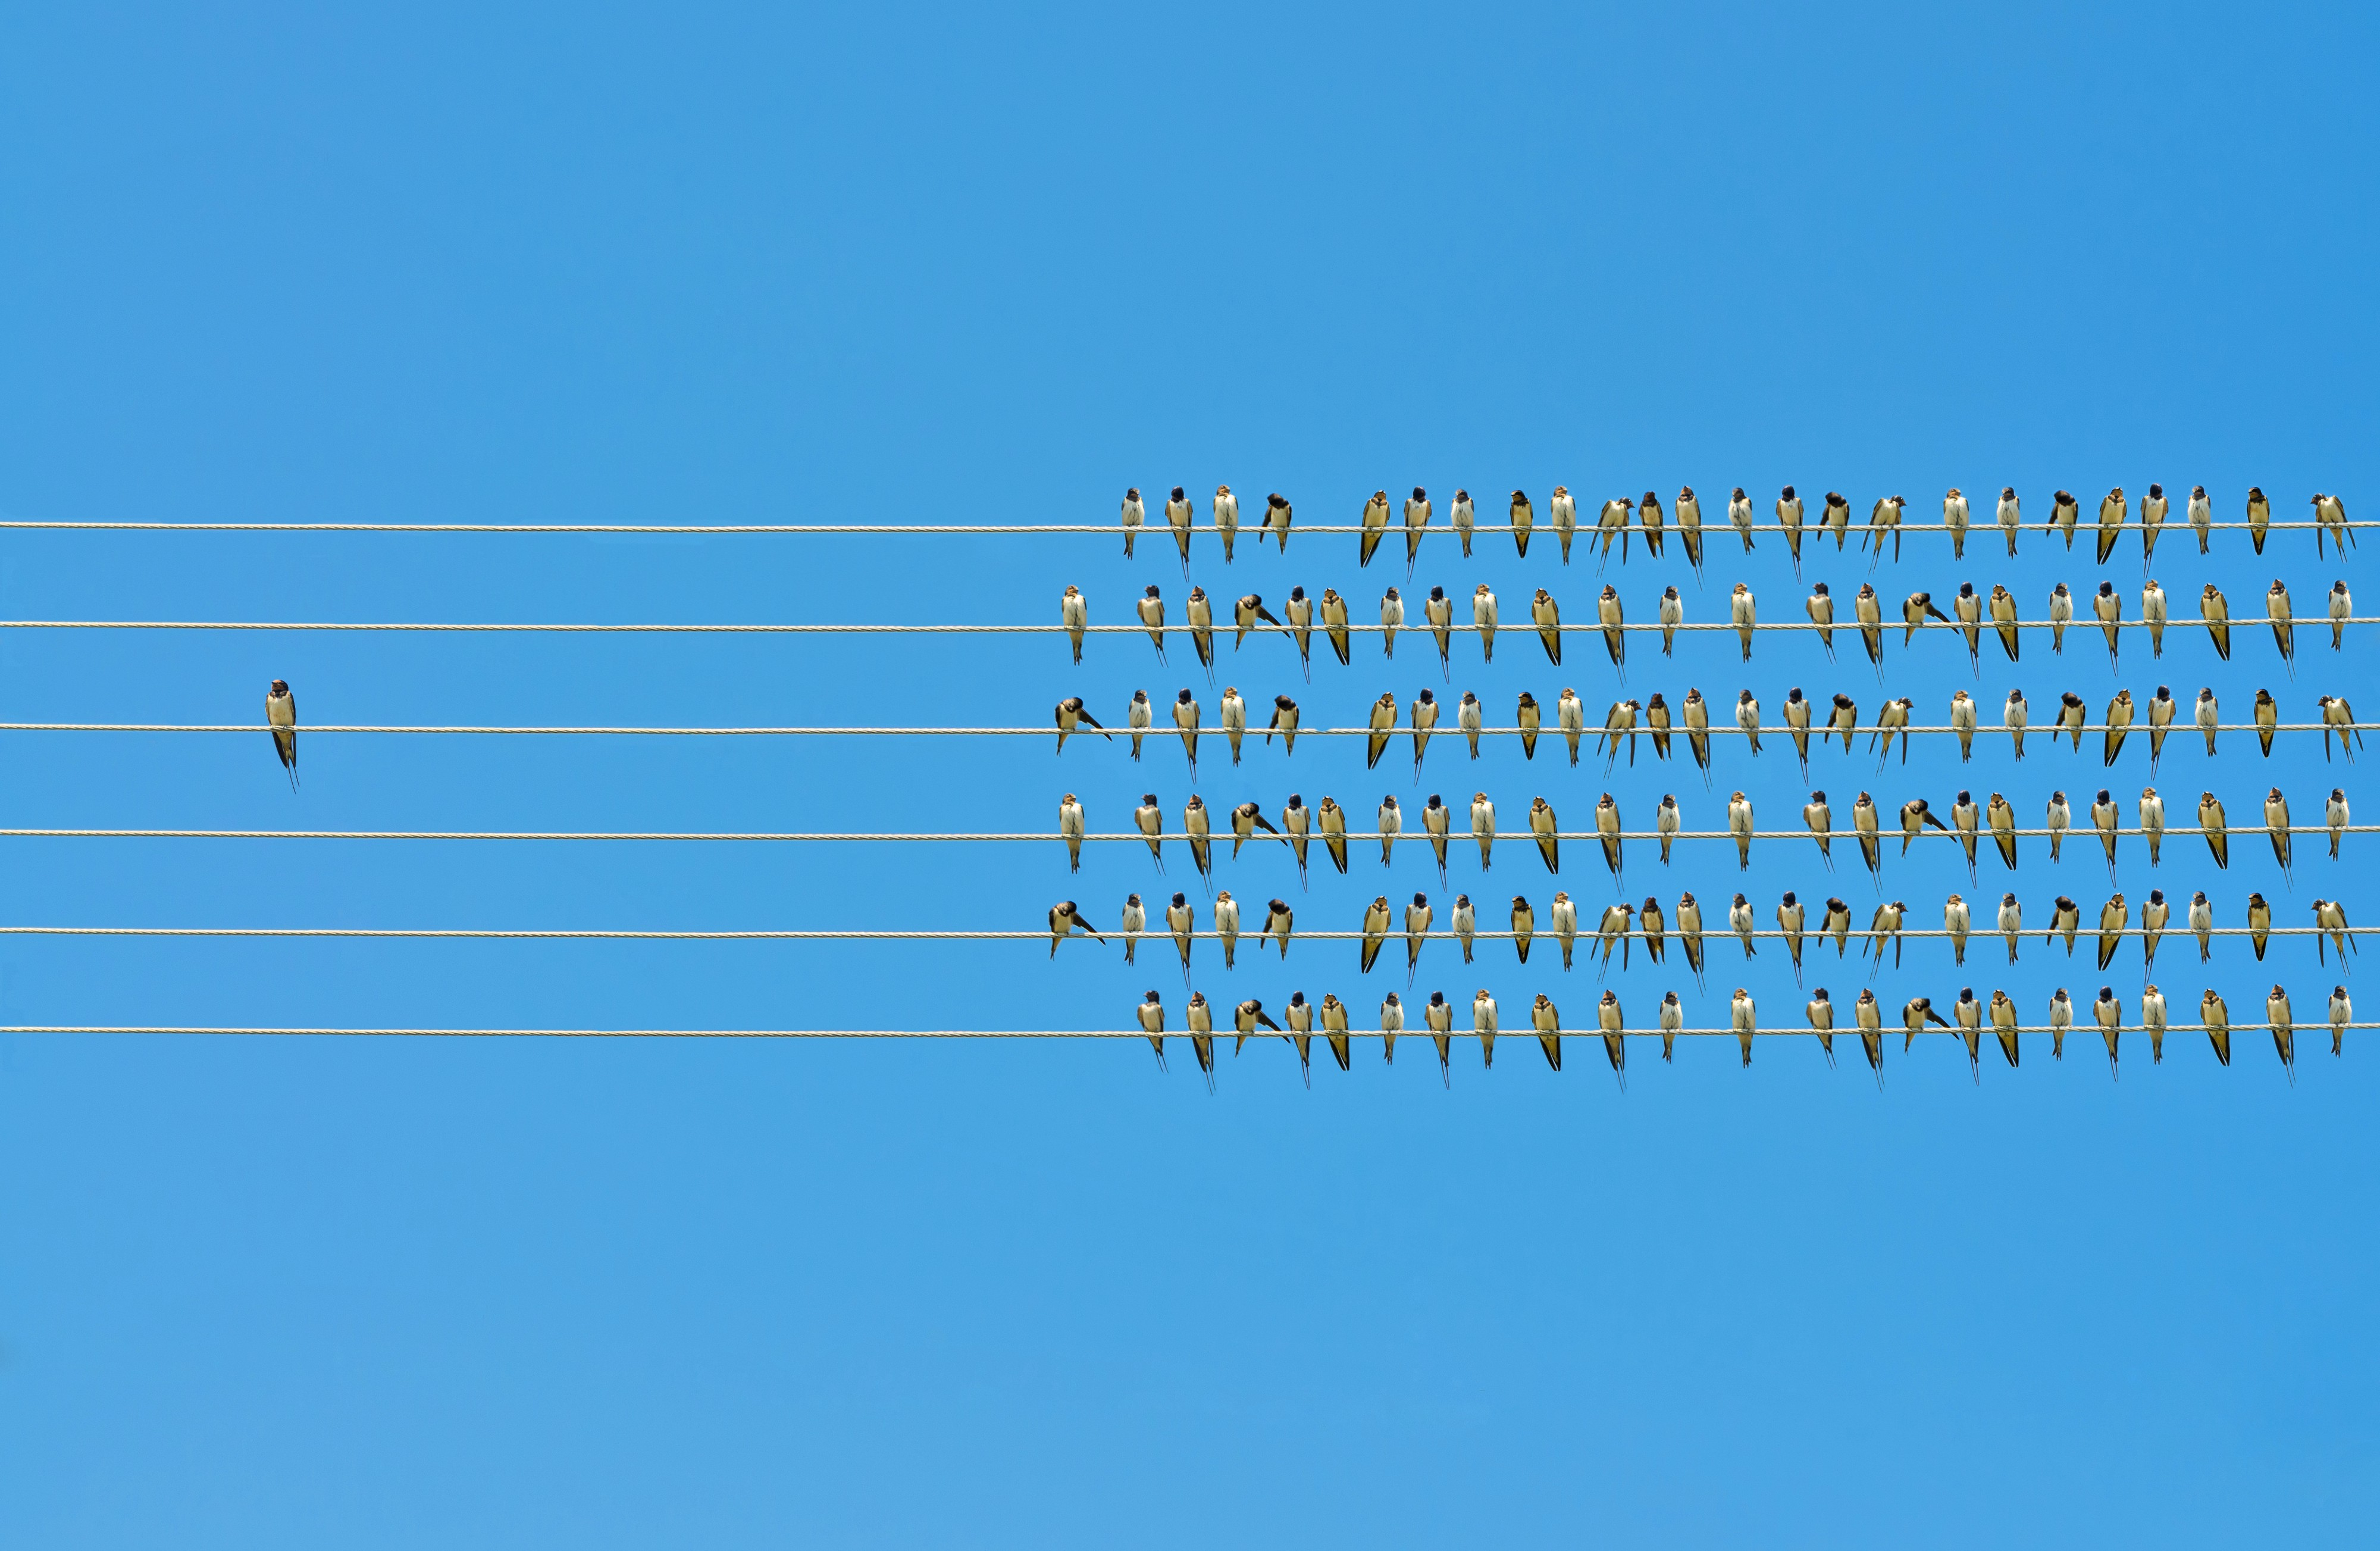 Birds on 4 wires. One bird alone and the other in a group.